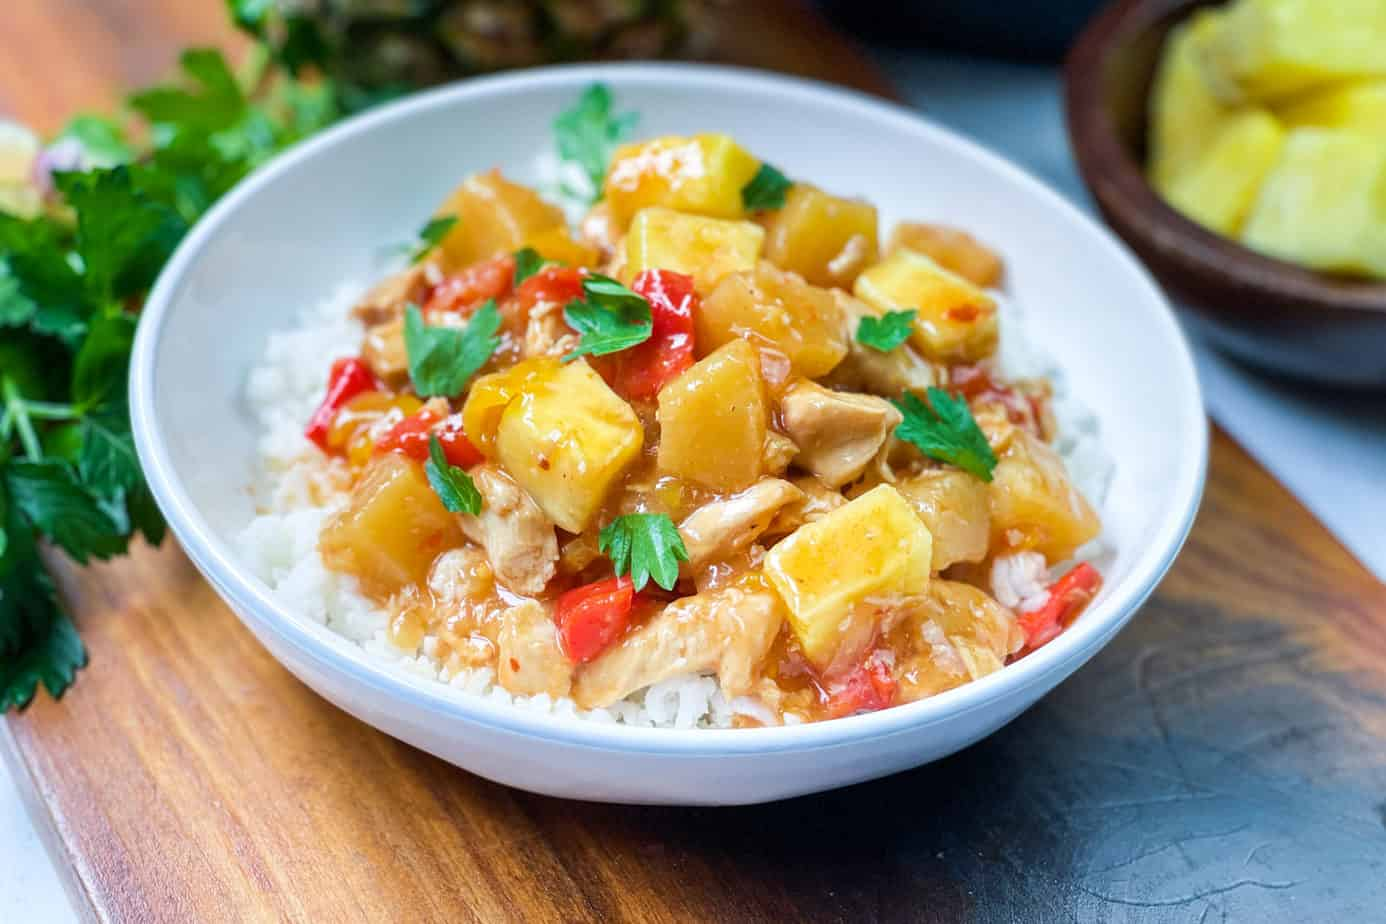 Bowl of Instant Pot Pineapple Chicken over white rice